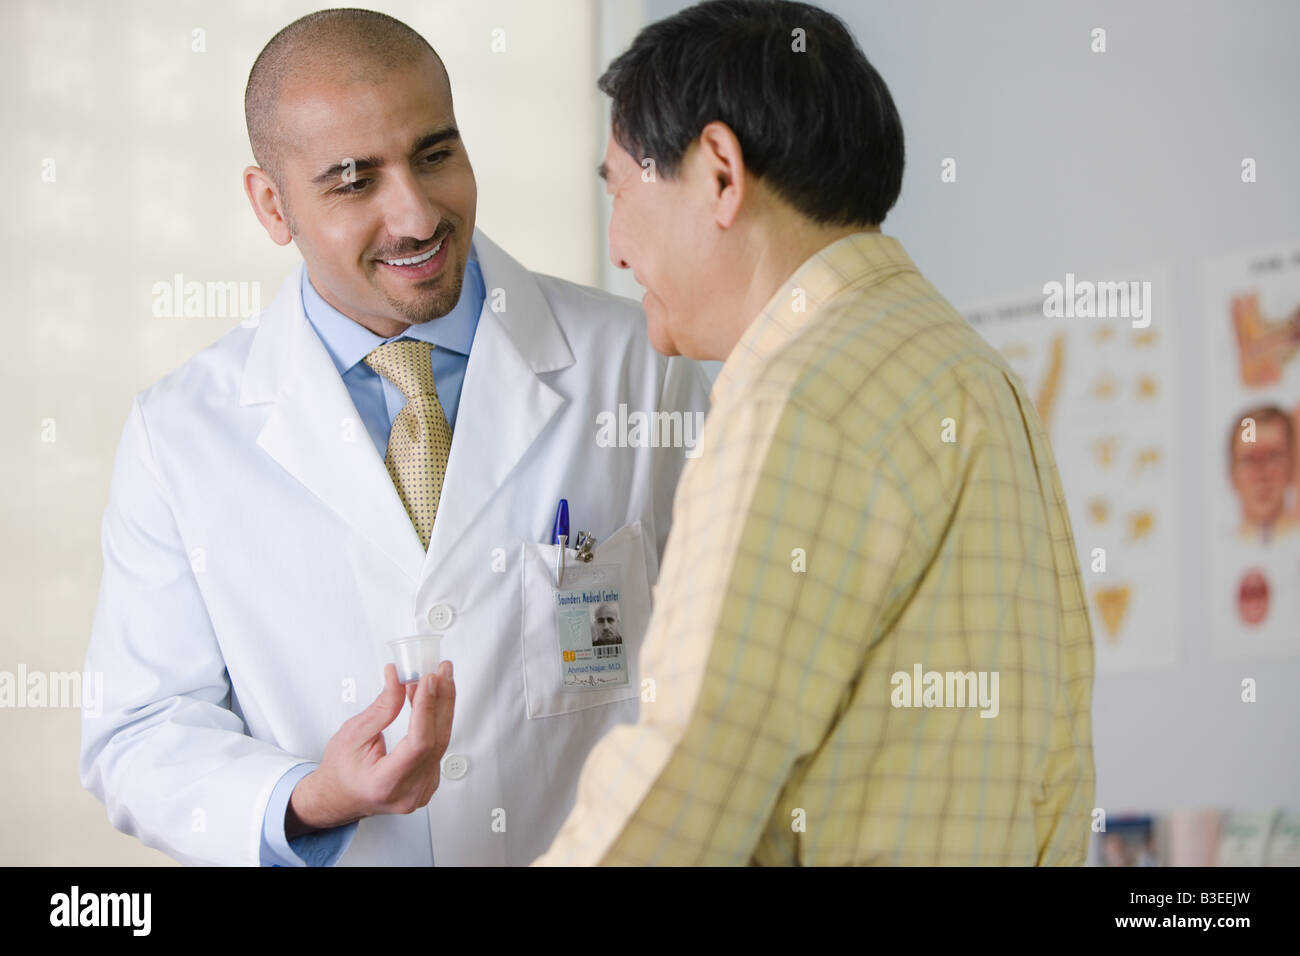 A doctor and a patient - Stock Image